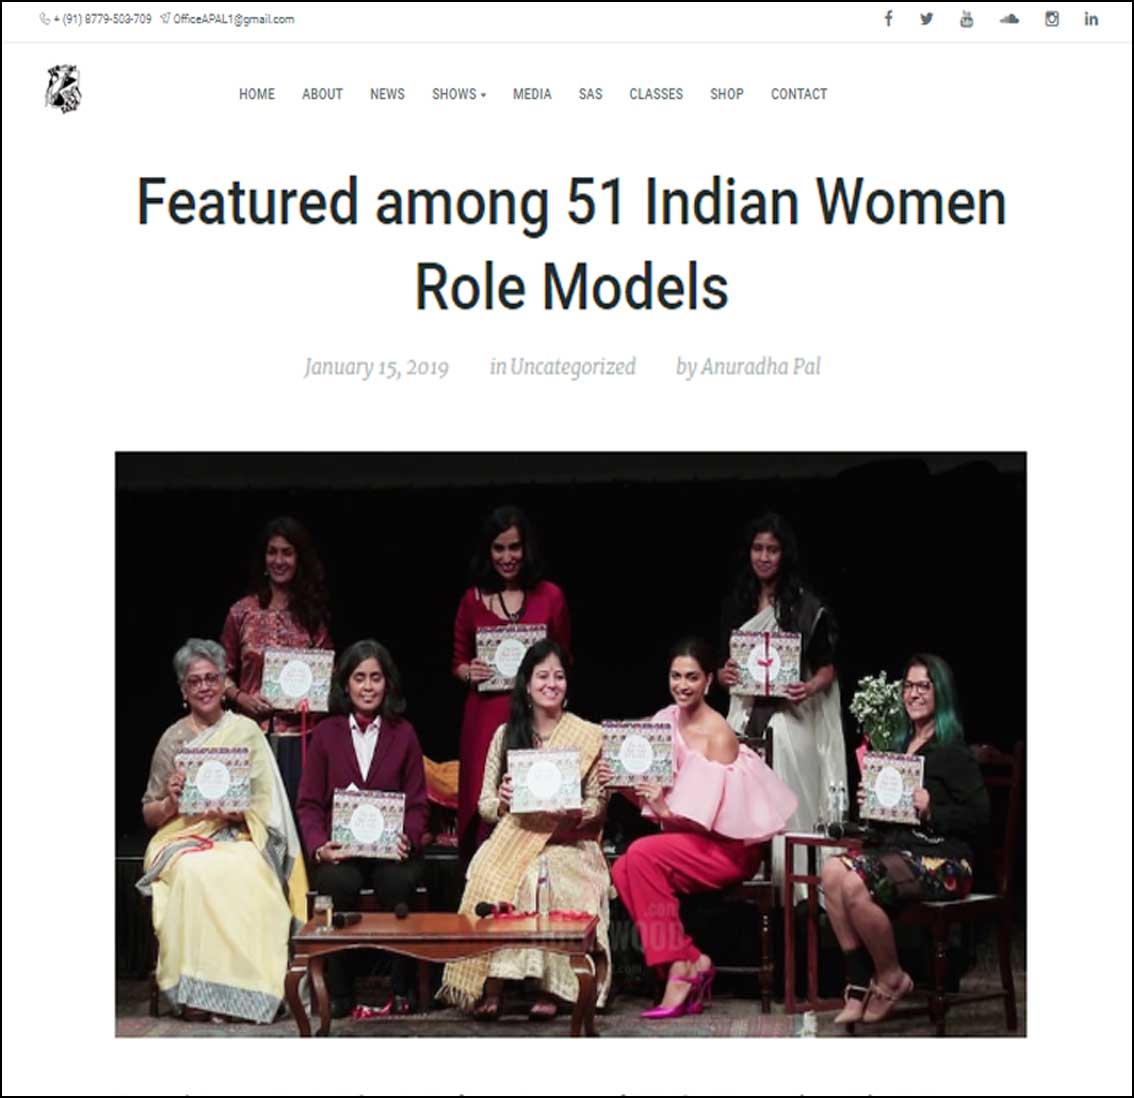 Featured among 51 Indian Women Role Models, The Dot that went for a walk ,anuradha pal - January 2019